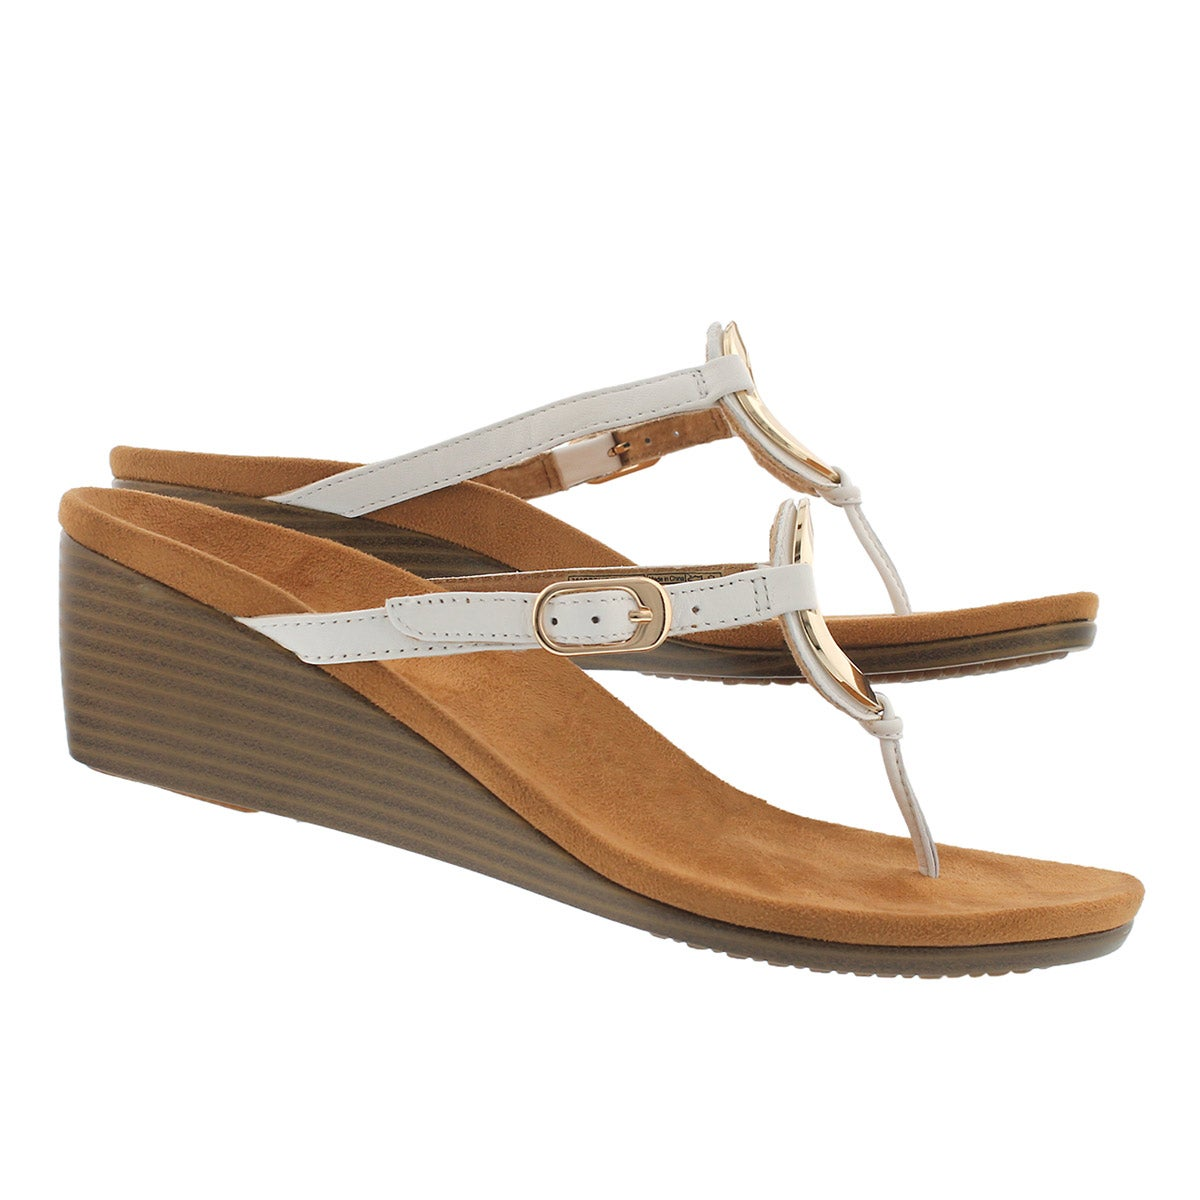 Lds Orchid wt arch support thng wdg sndl